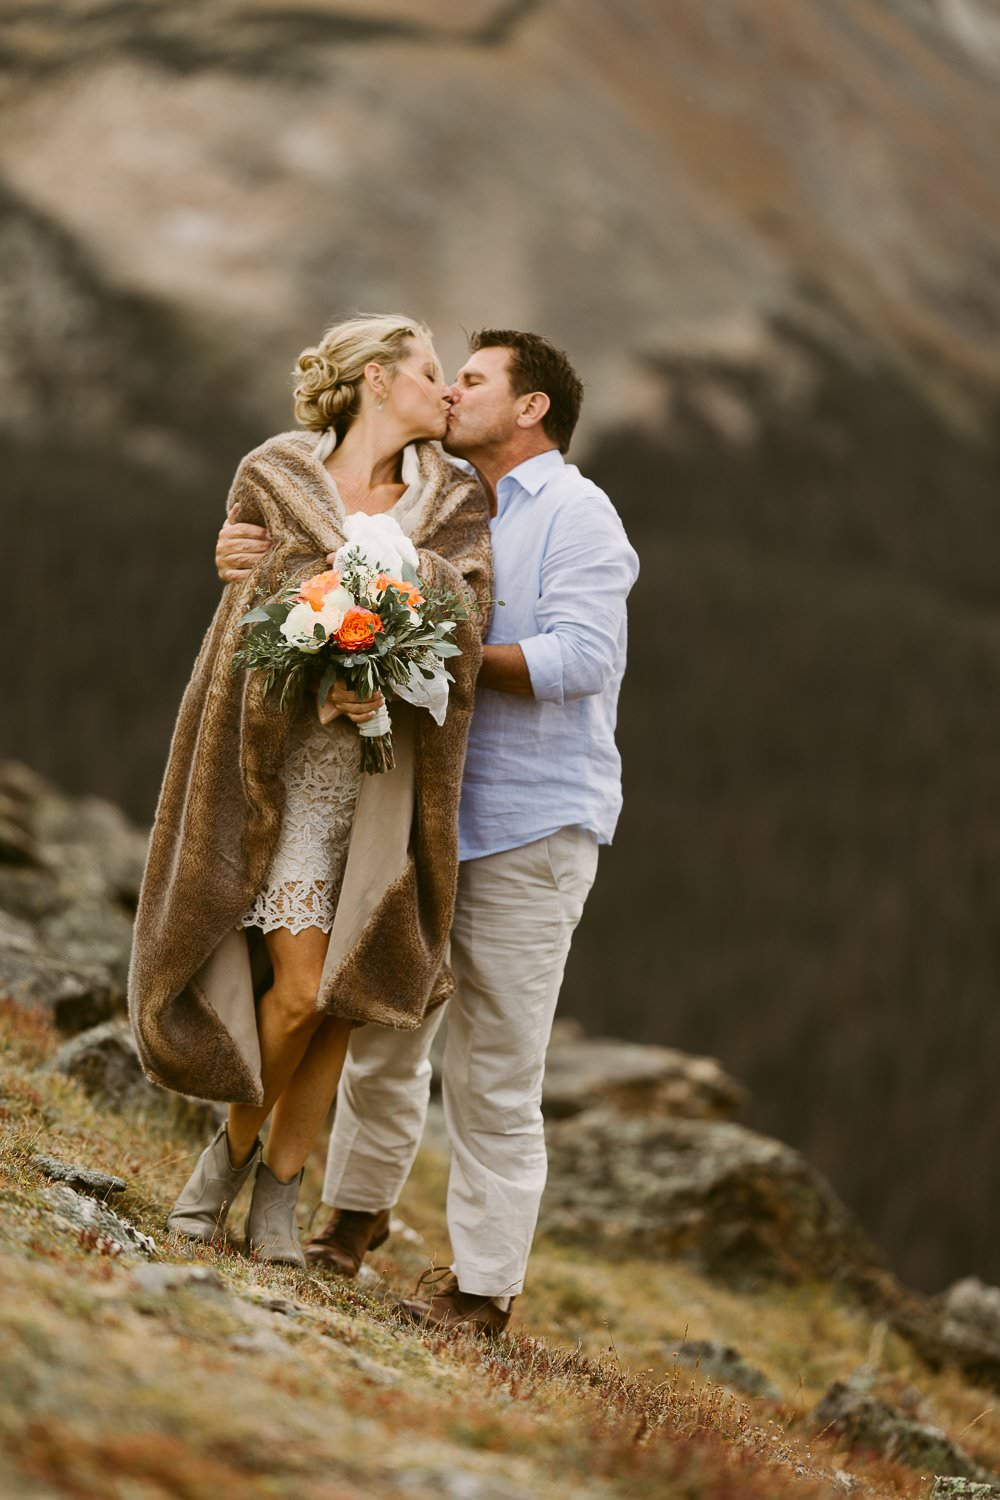 TRAIL RIDGE ADVENTURES | MAUREEN+ BRET| COLORADO MOUNTAIN ADVENTUROUS ELOPEMENT PHOTOGRAPHER|INTIMATE WEDDING| ADVENTURE ELOPEMENT PHOTOGRAPHER| SELF-SOLEMNIZING COLORADO ELOPEMENT PHOTOGRAPHER| JUSTYNA E BUTLER PHOTOGRAPHY